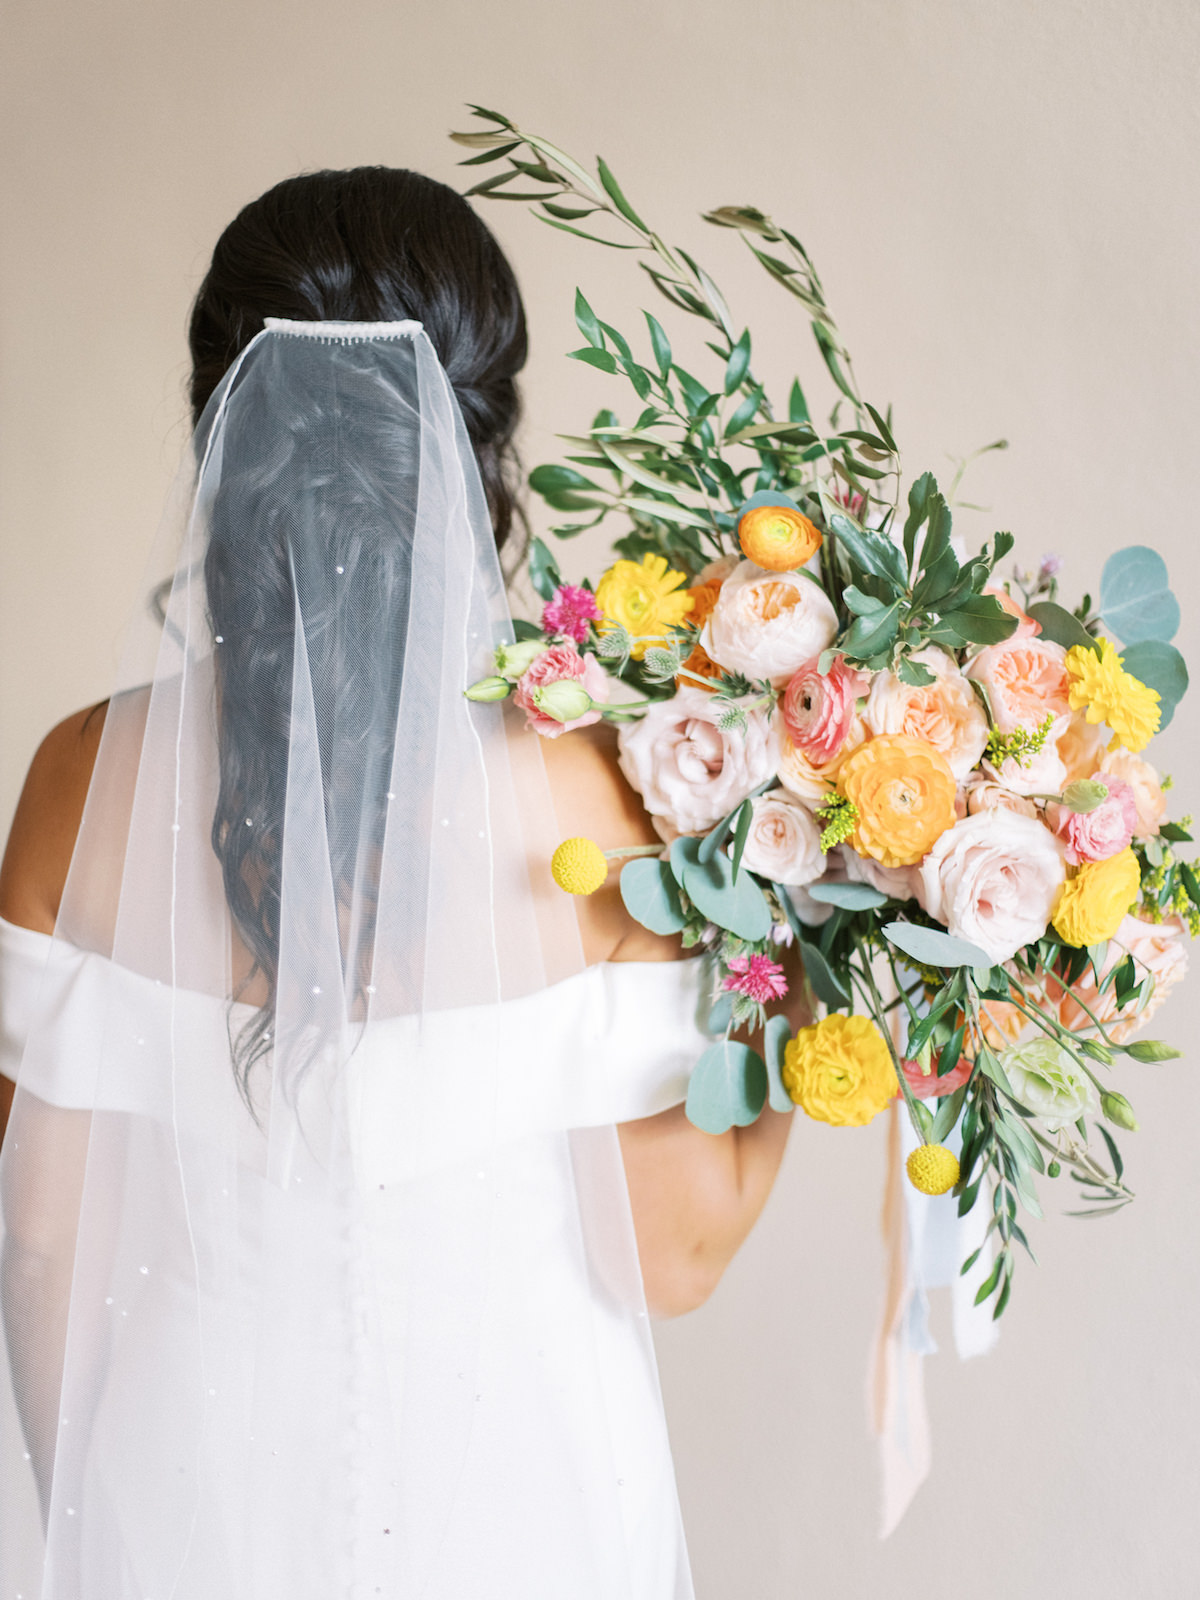 Florida Bride in Sophisticated Off The Shoulder White Wedding Dress with Beaded Veil, Holding Romantic Bridal Bouquet with Vibrant Floral Stems, Pink Roses, Peach Carnations, Yellow Flowers, Light Blue Ribbon Accent, Eucalyptus | Florida Wedding Planner Kelly Kennedy Weddings and Events